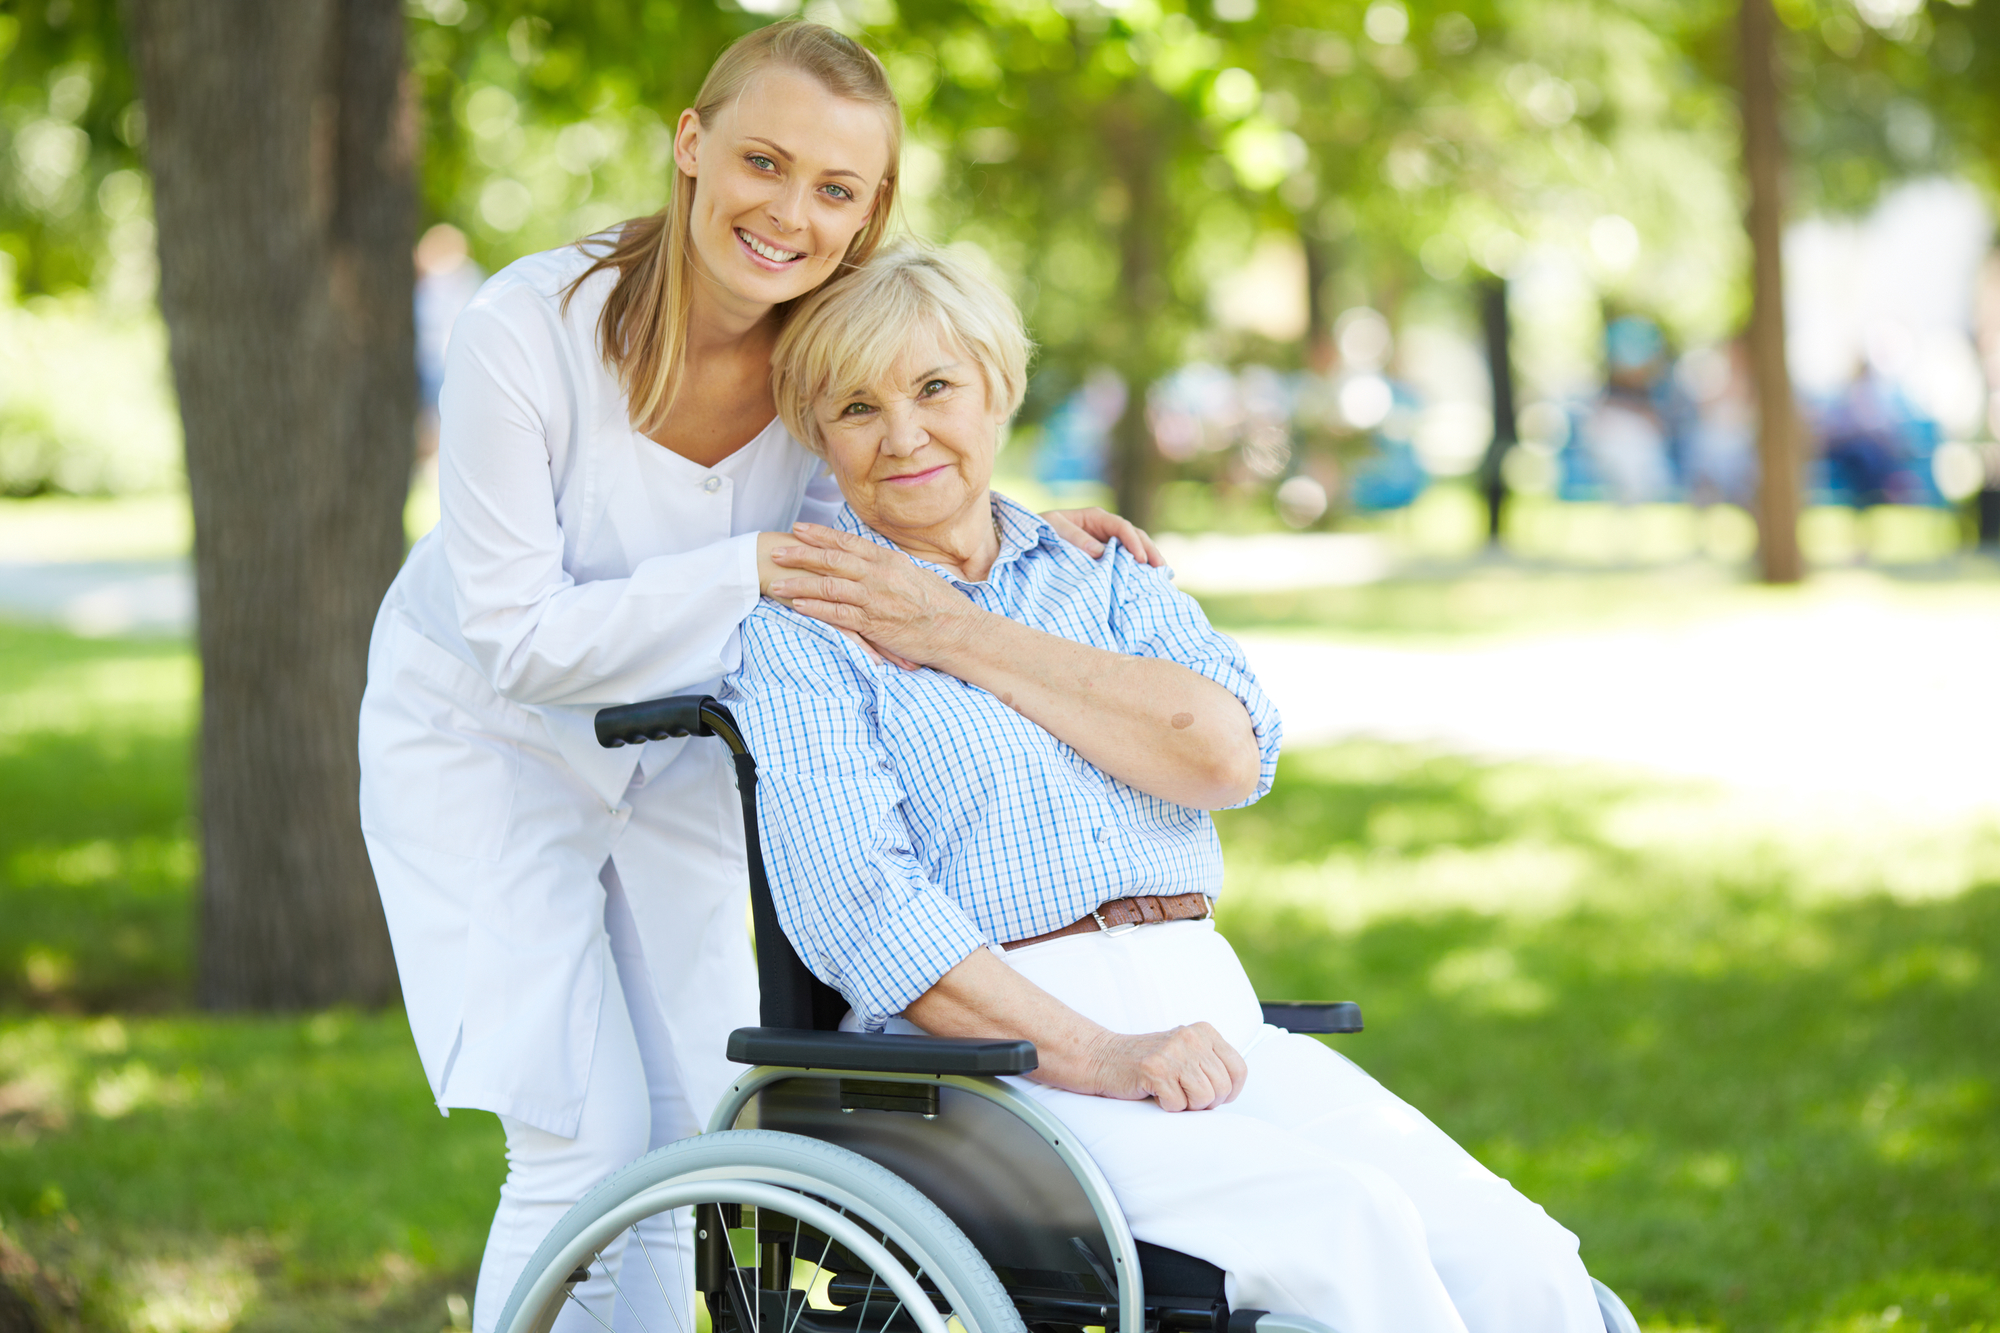 assisted living and home care referral agency